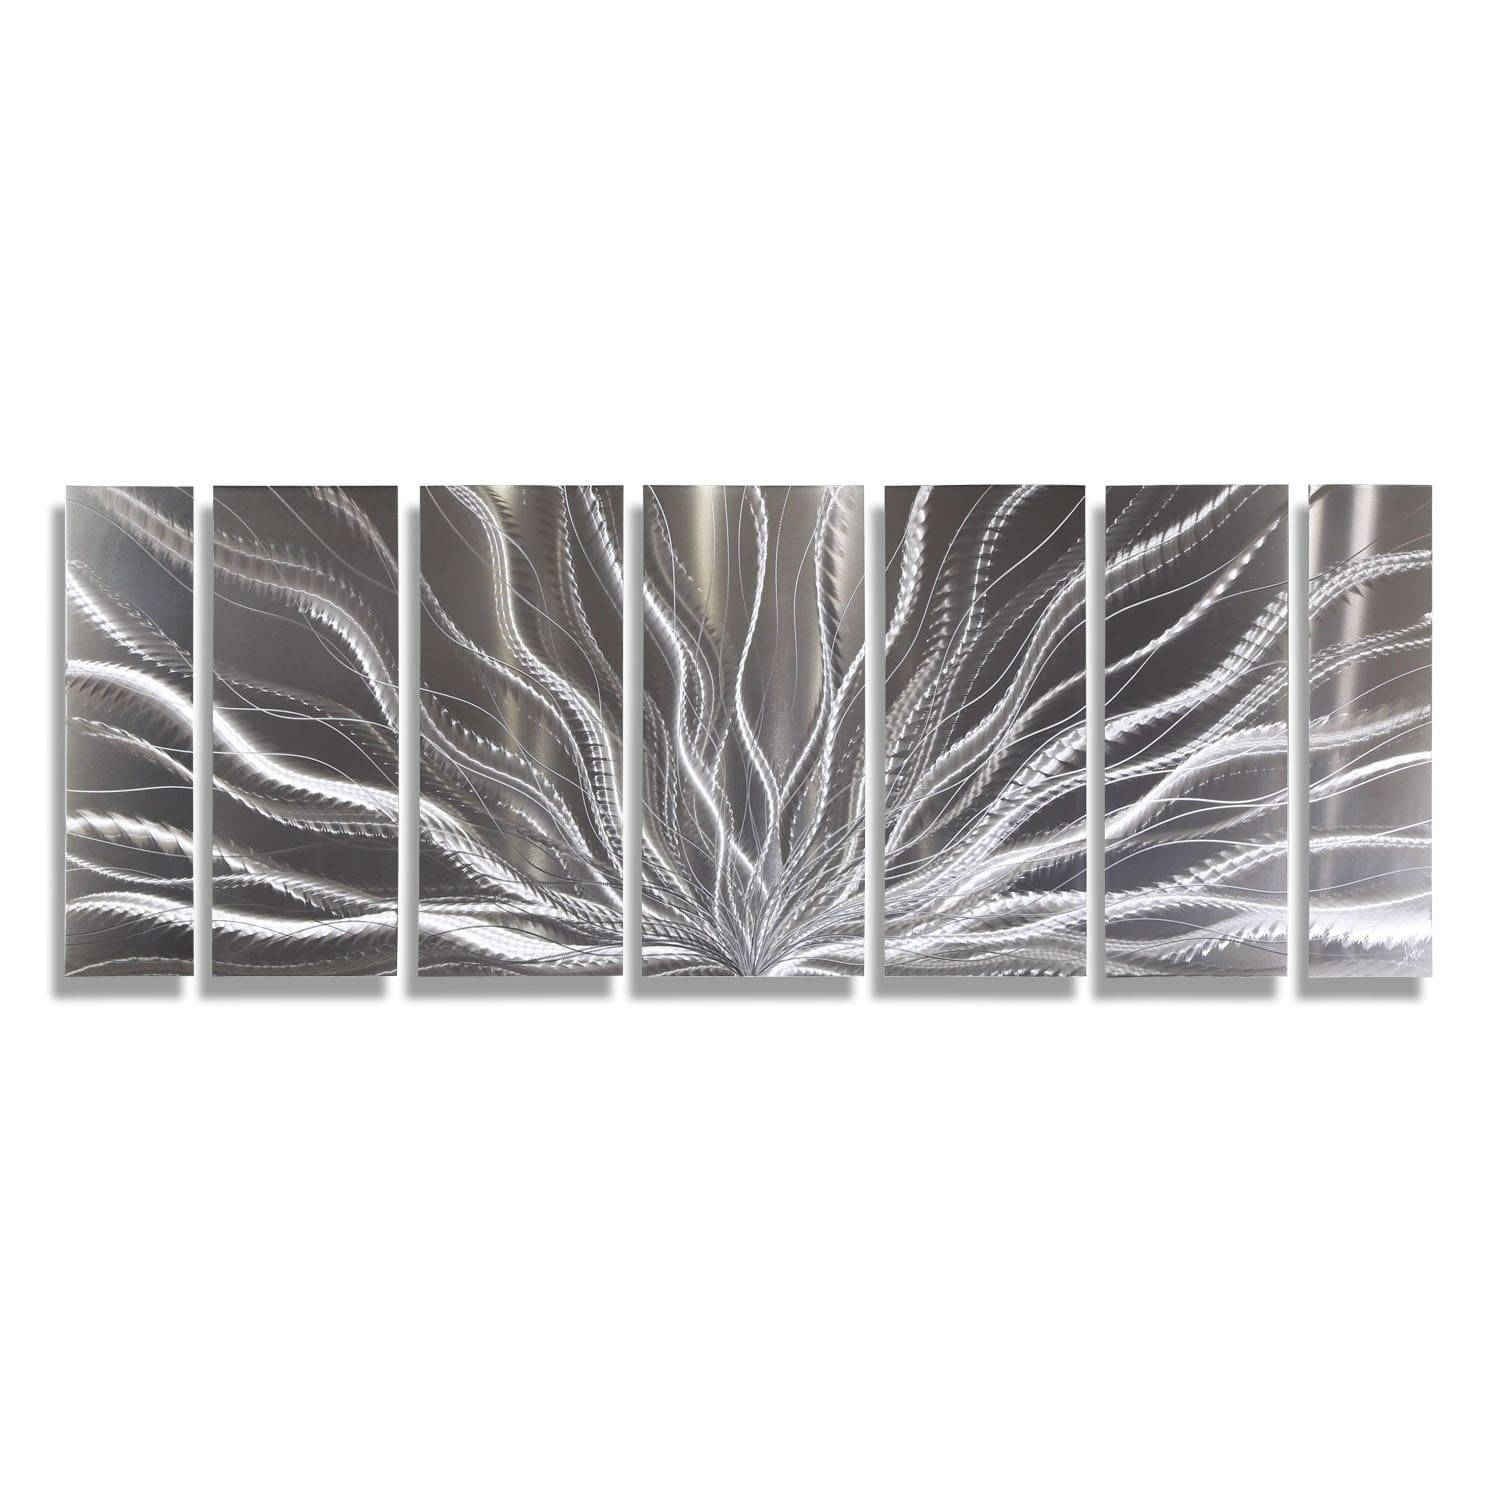 Statements2000 Silver Abstract Etched Metal Wall Art Sculpture With Most Popular Etched Metal Wall Art (View 9 of 20)